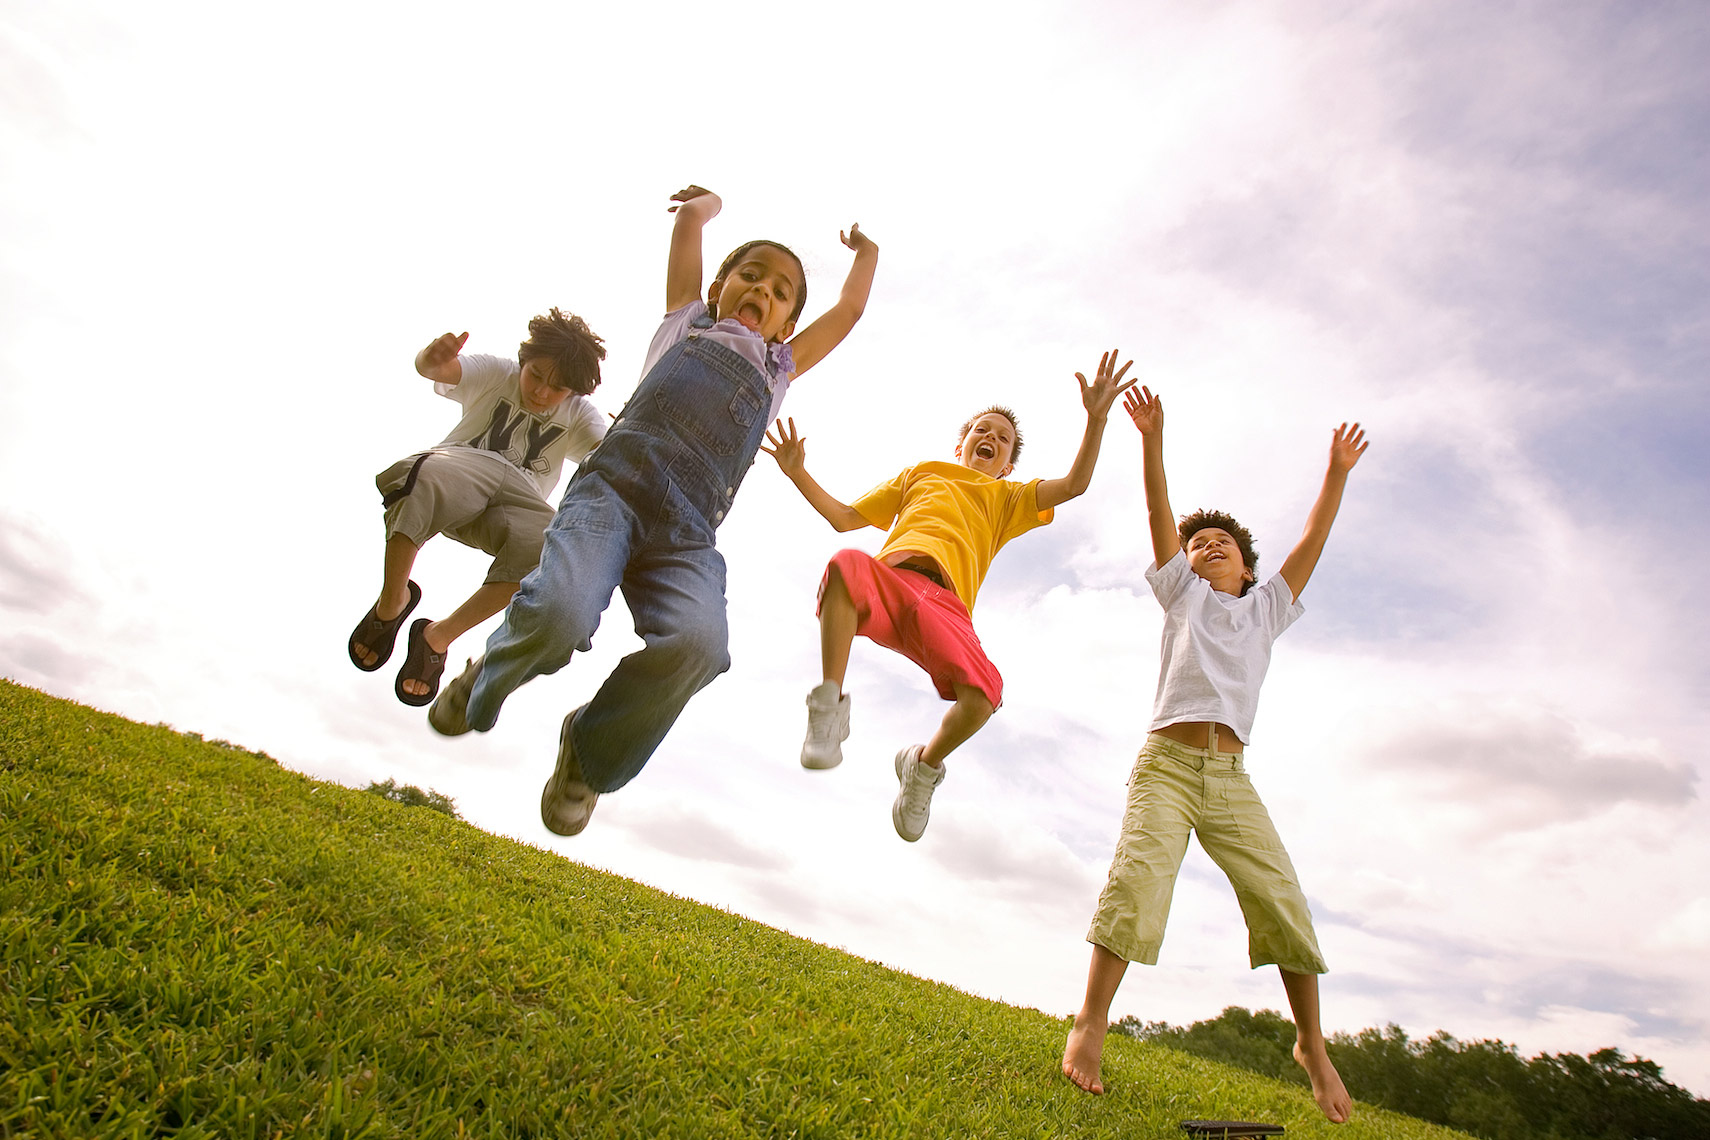 children jumping in air at park_Robert_Holland.jpg